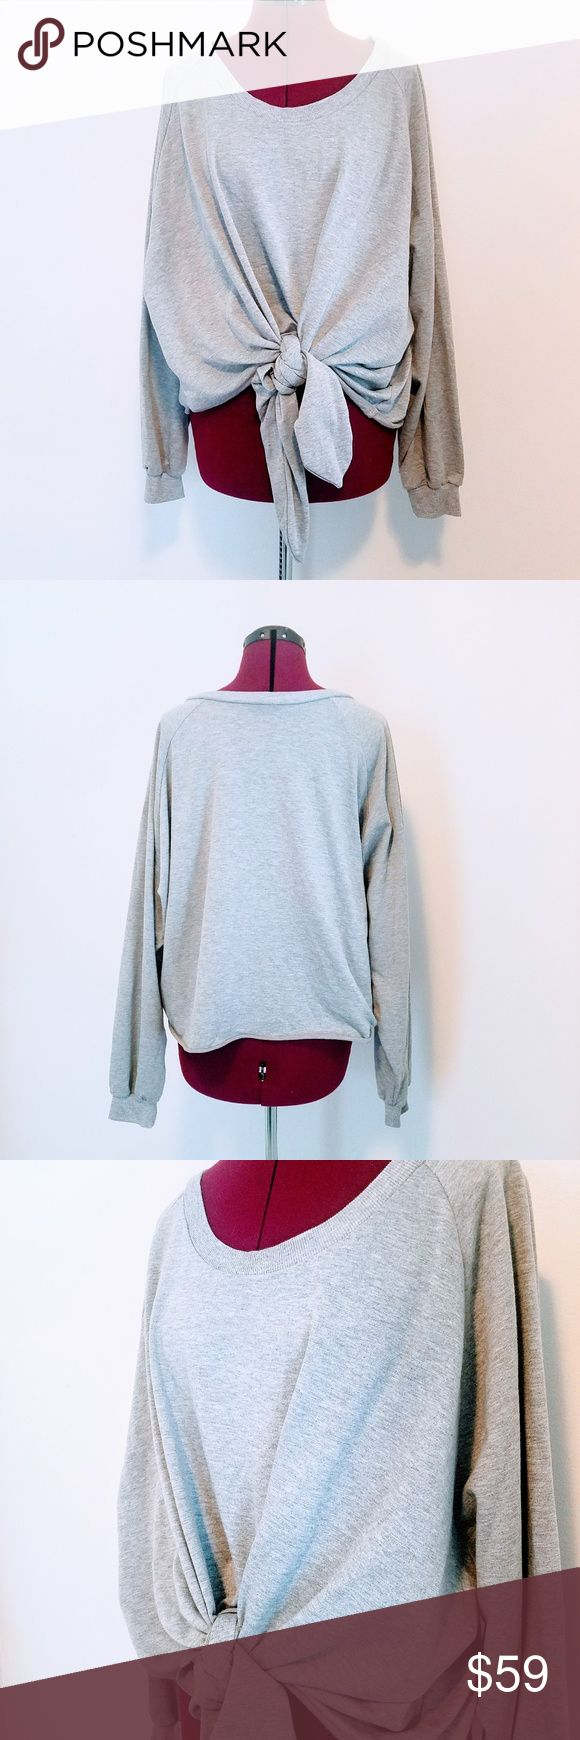 NUDE Brand Women's Gray Tie Front Sweatshirt NUDE Brand Women's Gray Tie Front Sweatshirt Size LARGE  Roomy, comfy, perfect for gym or casual wear. NUDE Tops Sweatshirts & Hoodies